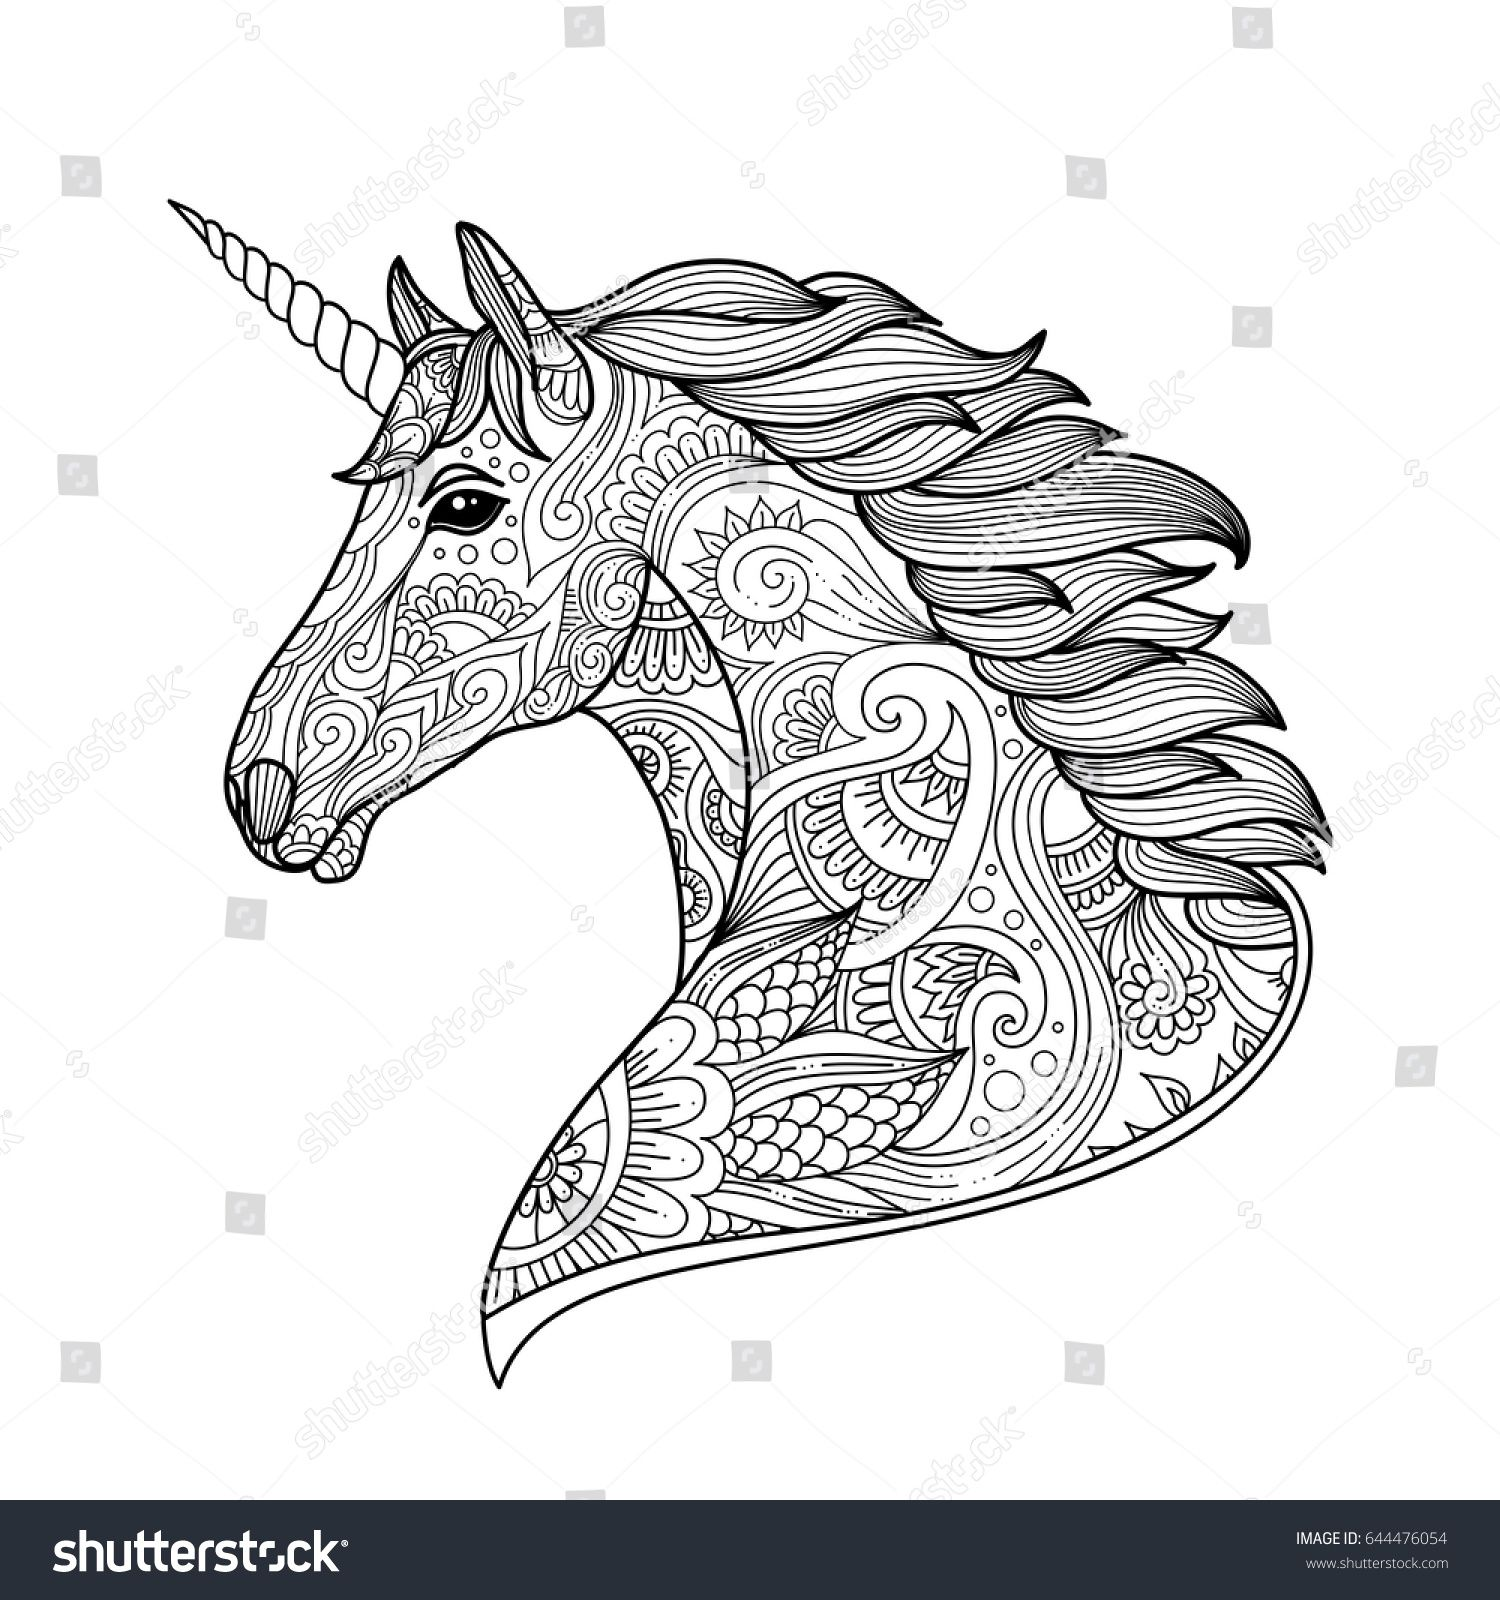 Drawing Unicorn Zentangle Style For Coloring Book Tattoo Shirt Design Logo Sign Stylized Illustration Of Horse In Tangle Doodle